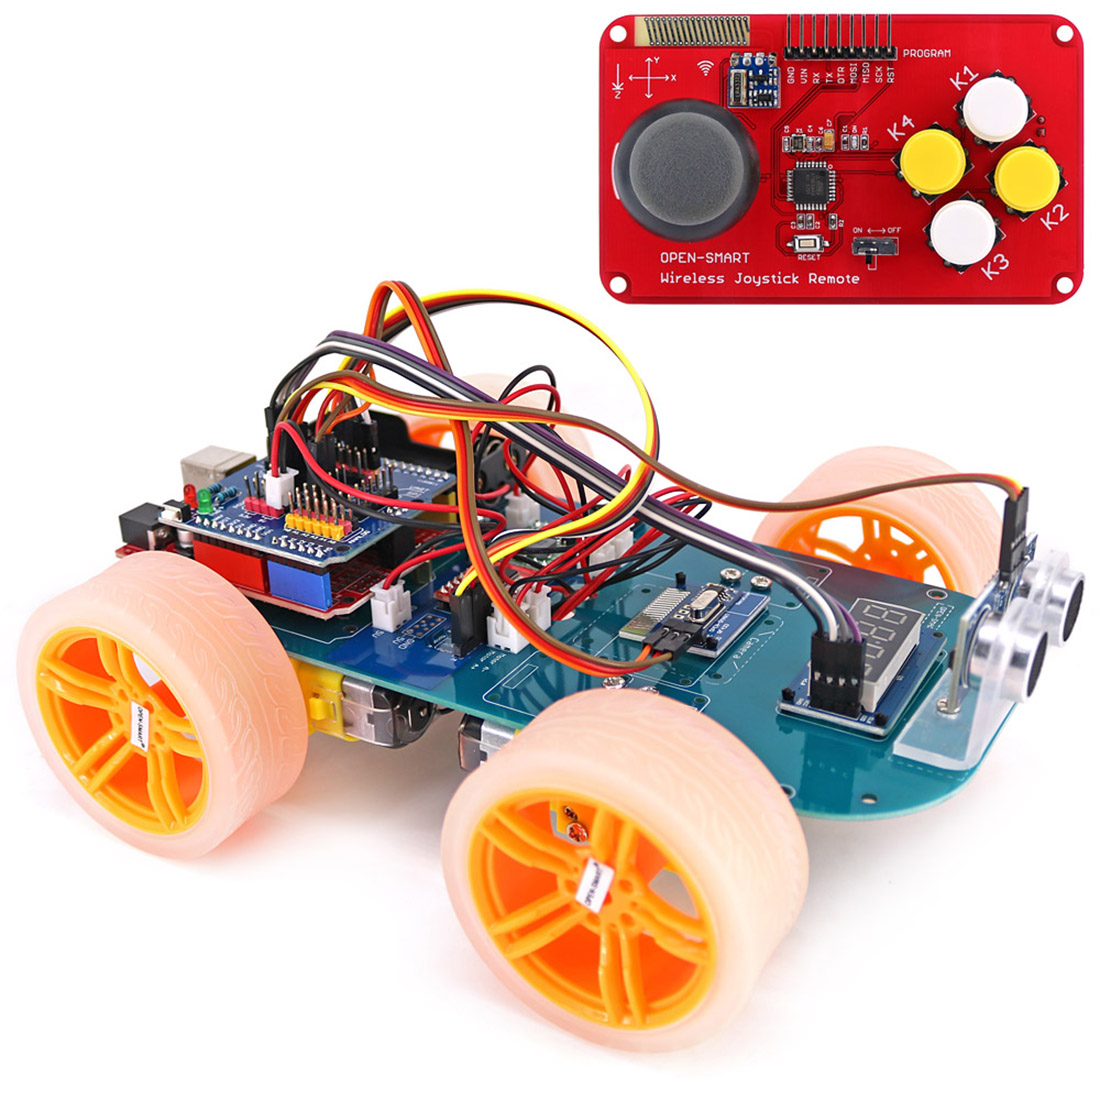 4WD Wireless JoyStick 3.7v DIY Remote Control Smart Car Programmable High Tech Toy Kit With Tutorial For Arduino FOR  R3 Nano